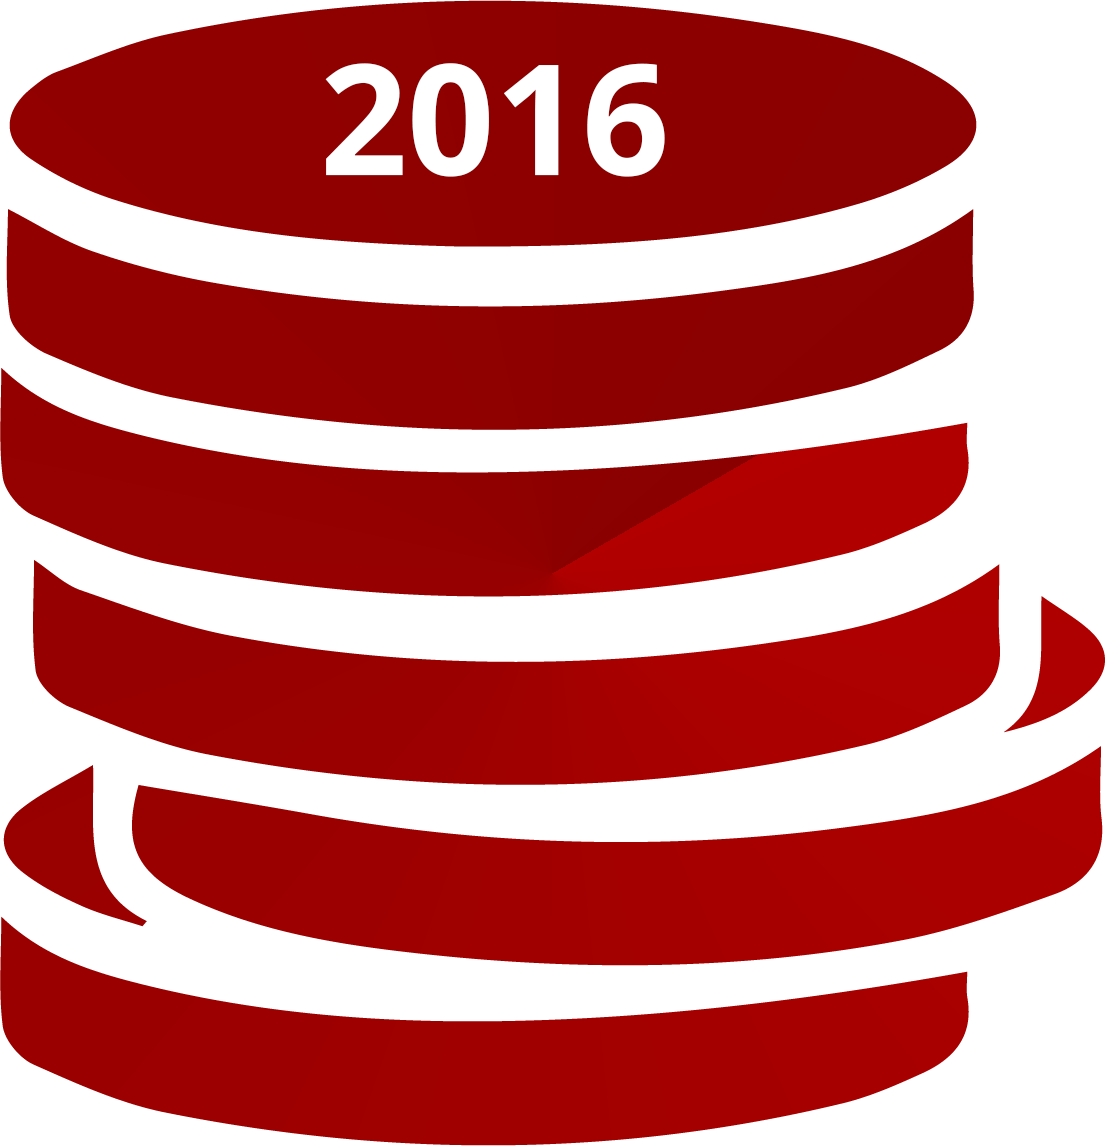 illustration of a stack of coins dated 2016